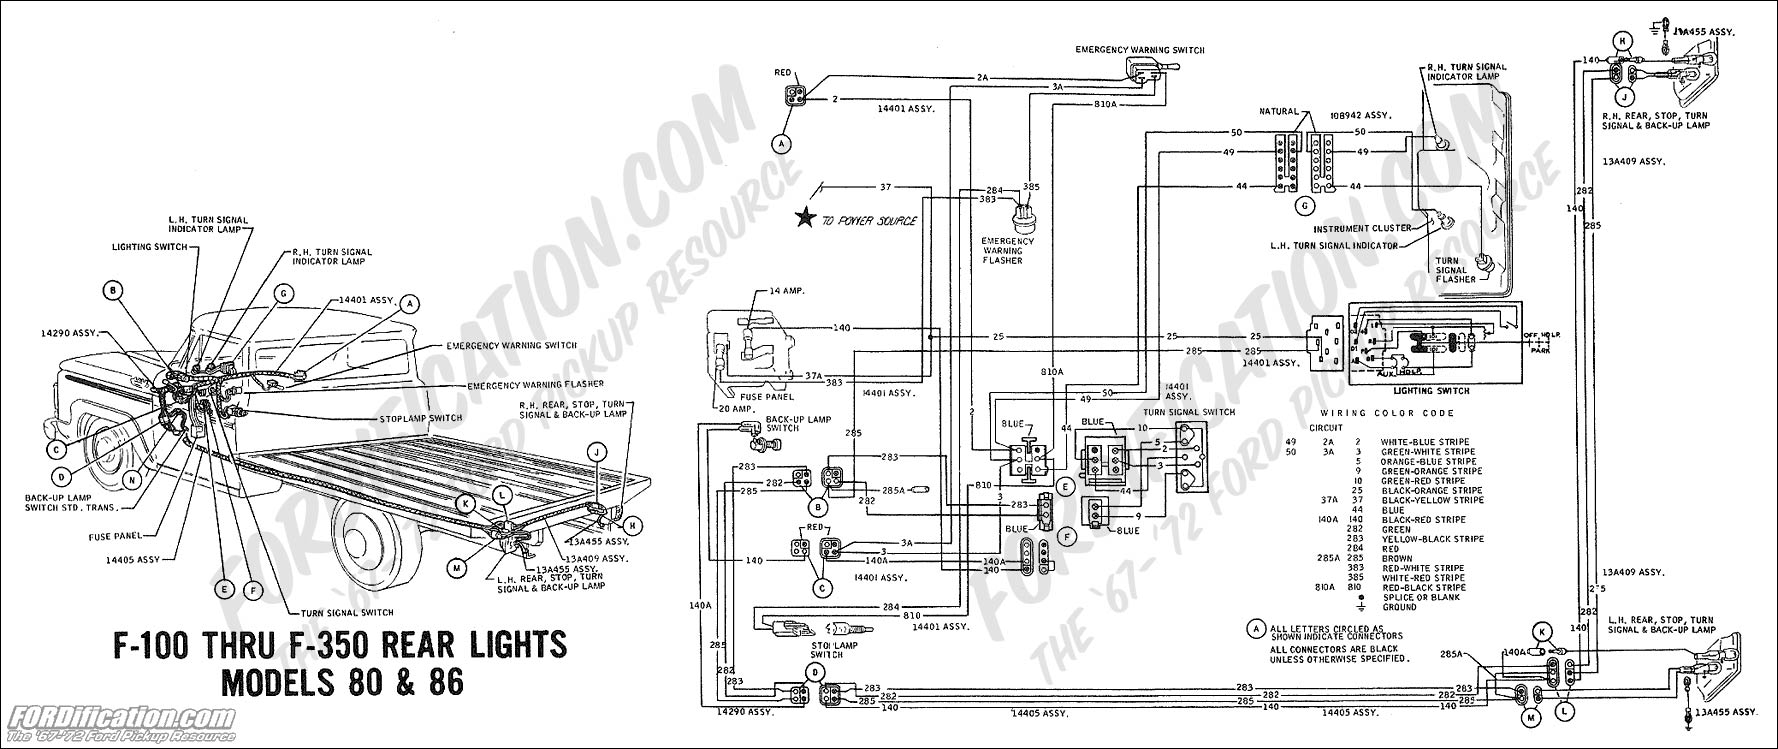 hight resolution of 1970 ford f600 wiring diagram simple wiring diagram1983 f600 ford wiring diagram completed wiring diagrams ford